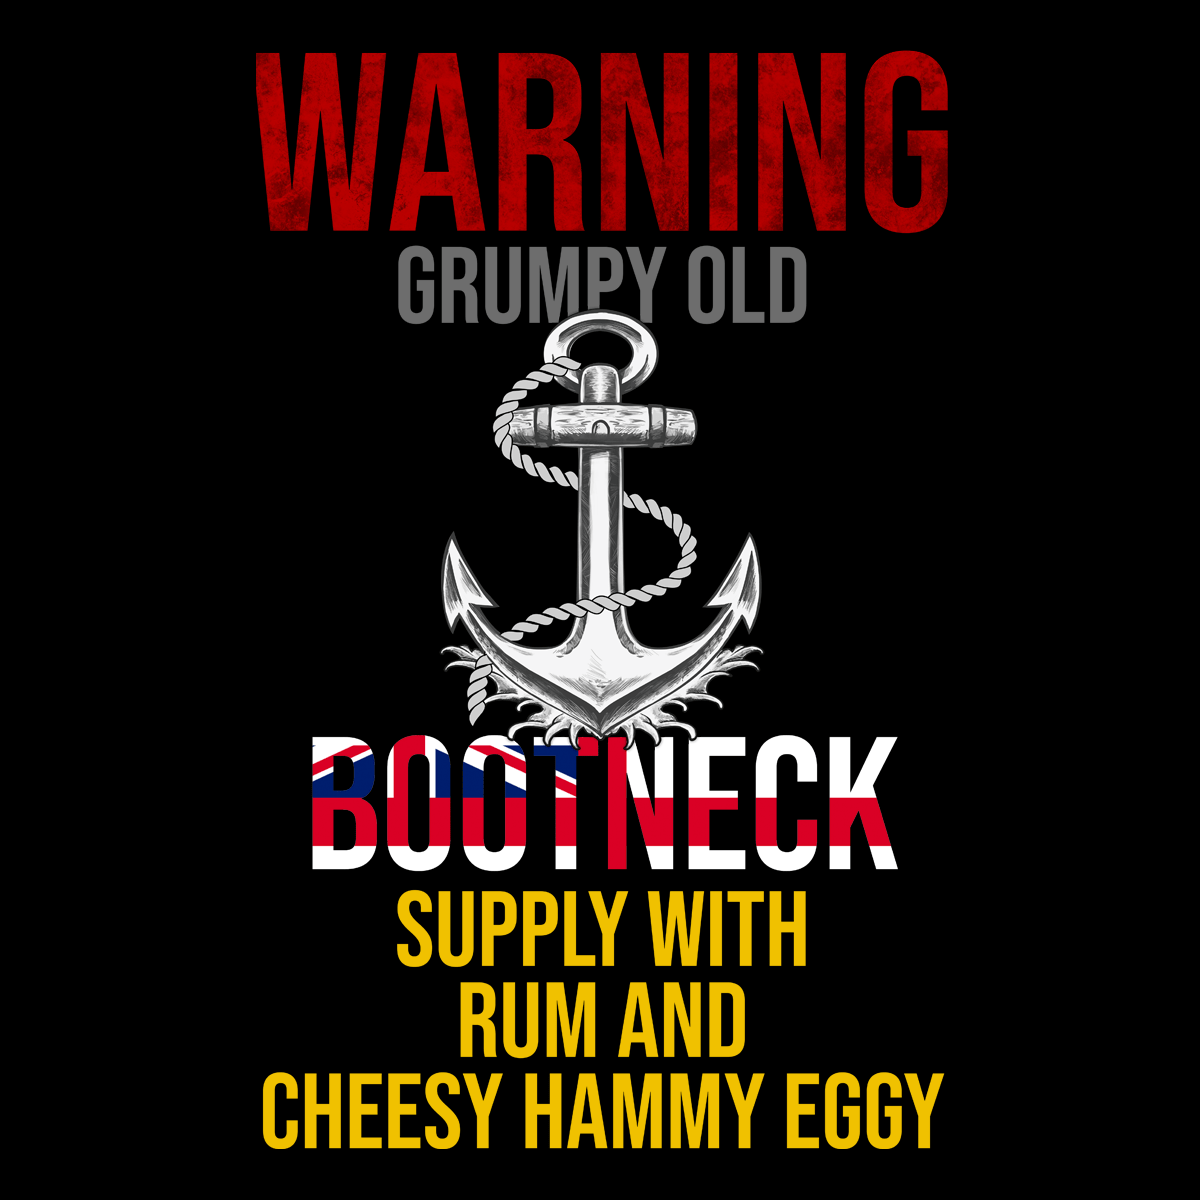 Grumpy Old Bootneck, Give Cheesy, Hammy, Eggy Unisex T Shirt